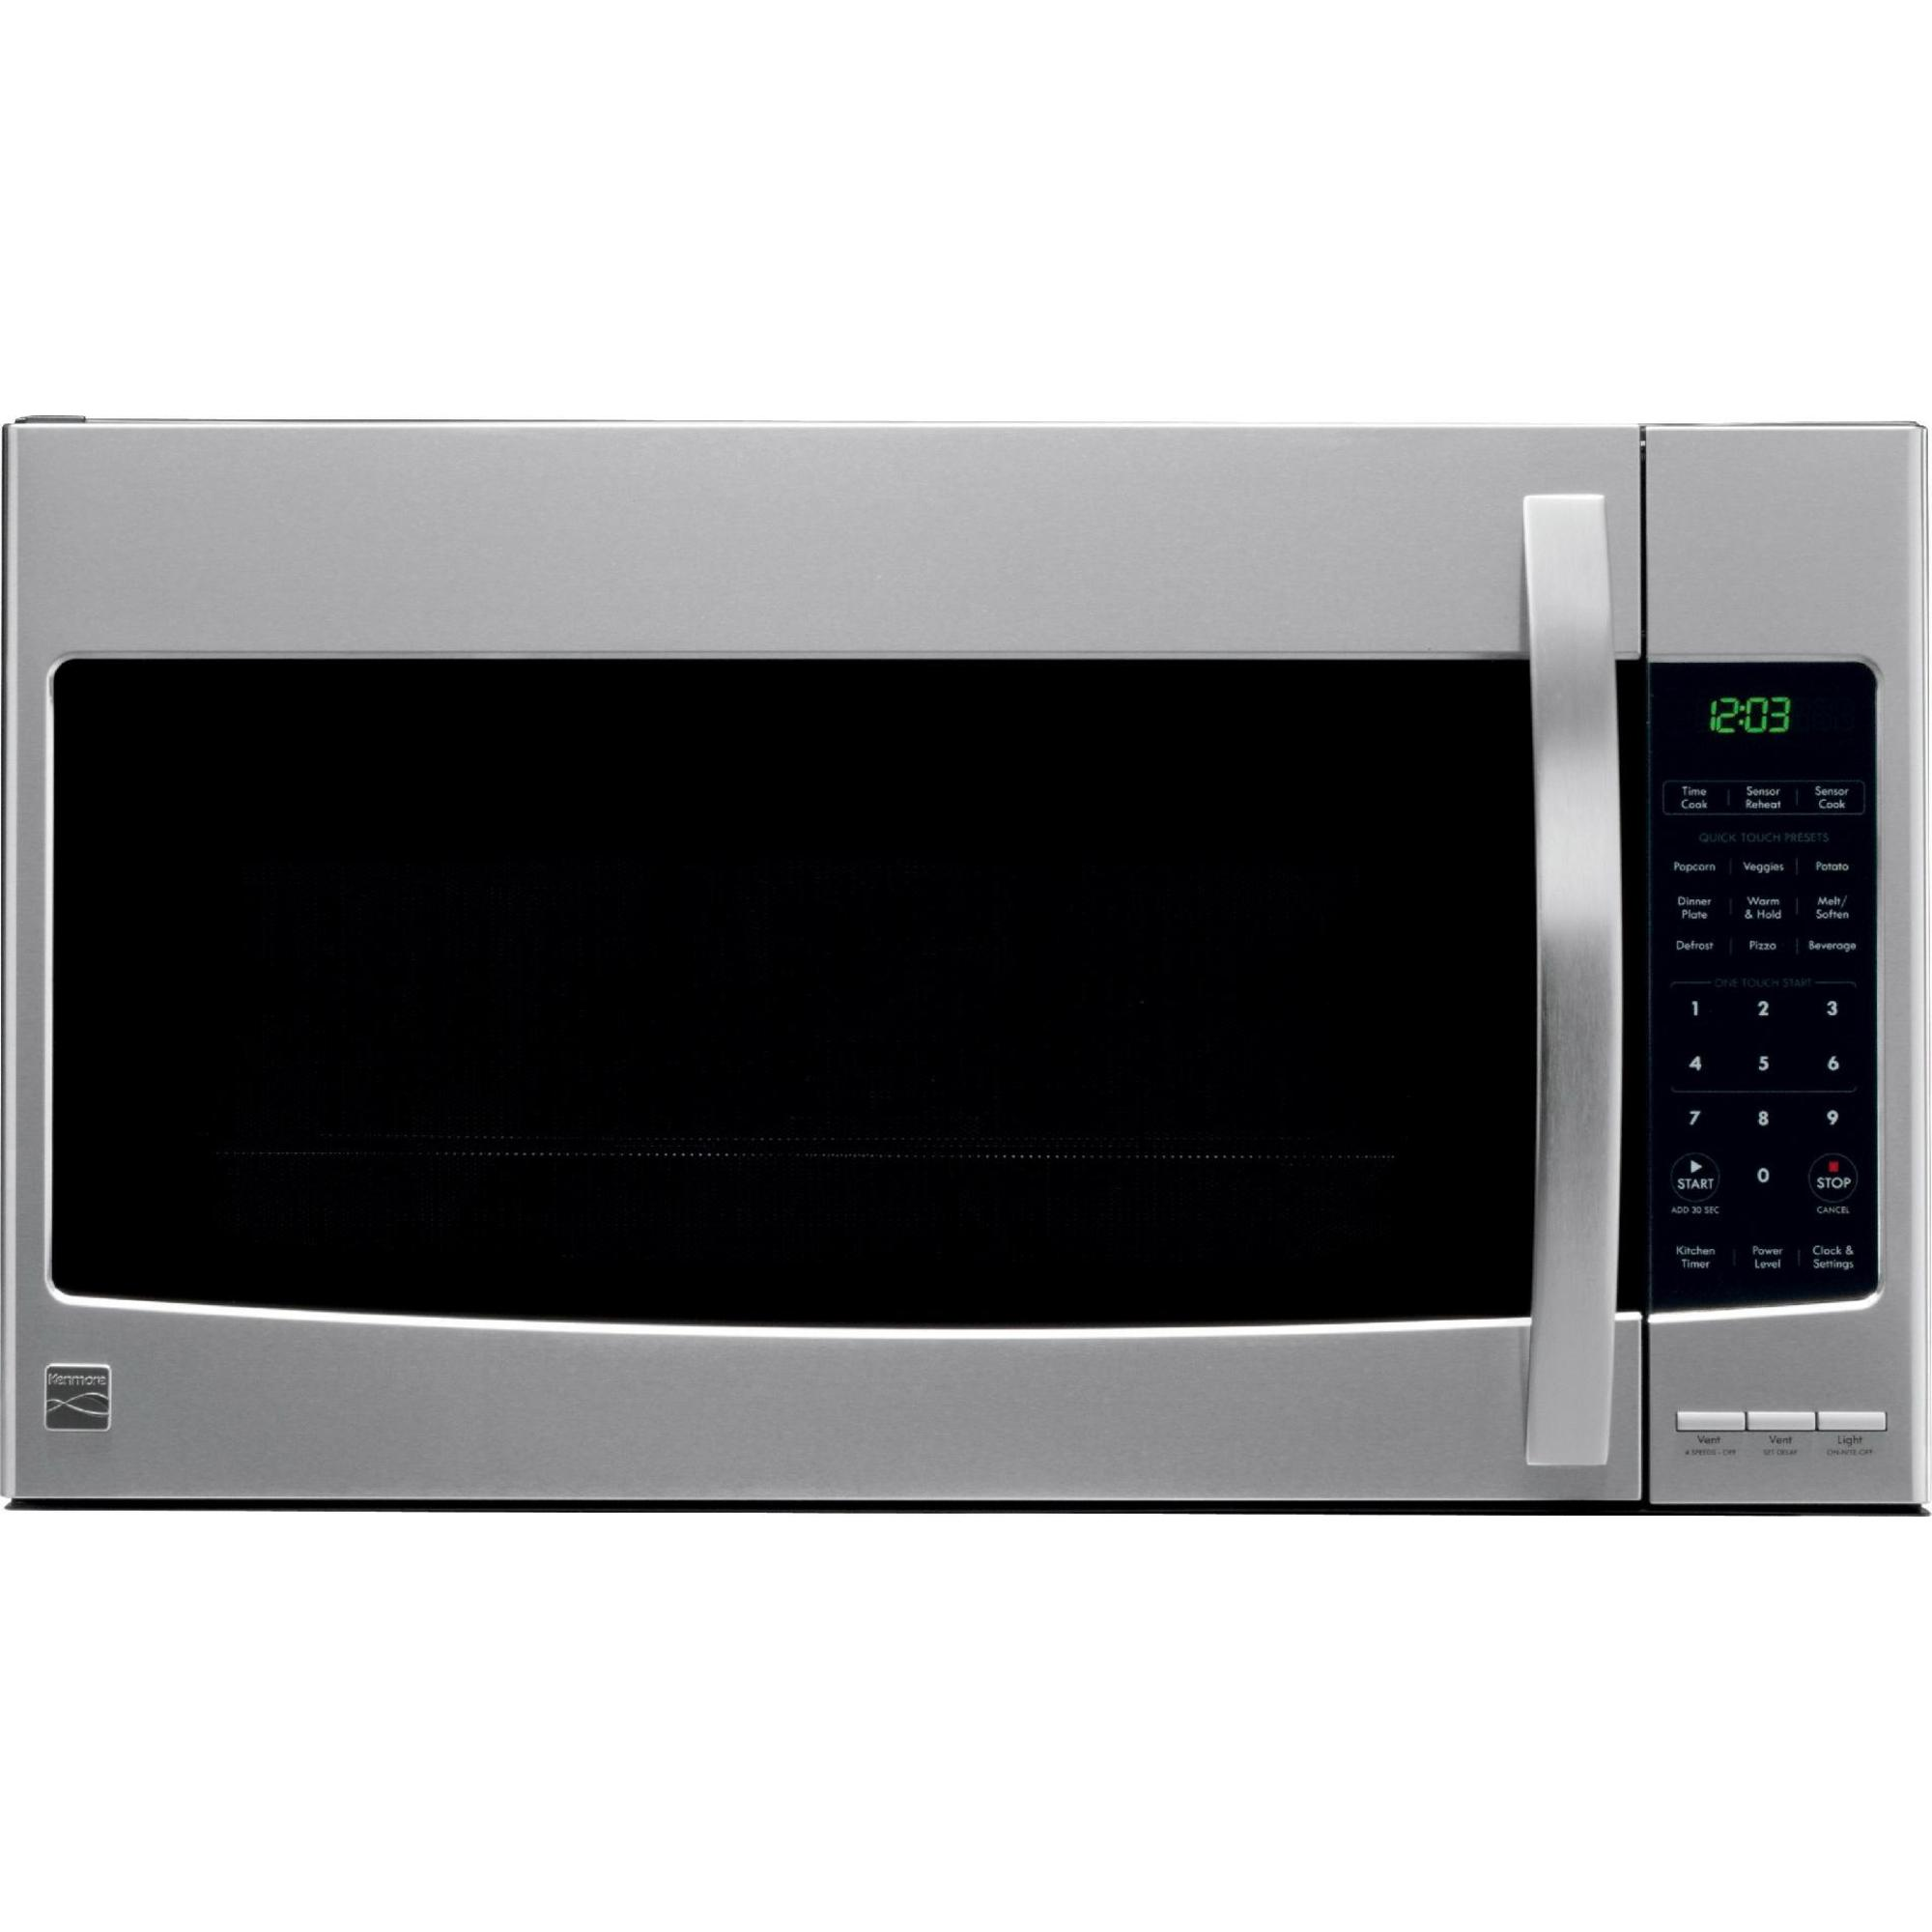 Kenmore 80353 2.1 cu. ft. Over-the-Range Microwave - Stainless Steel